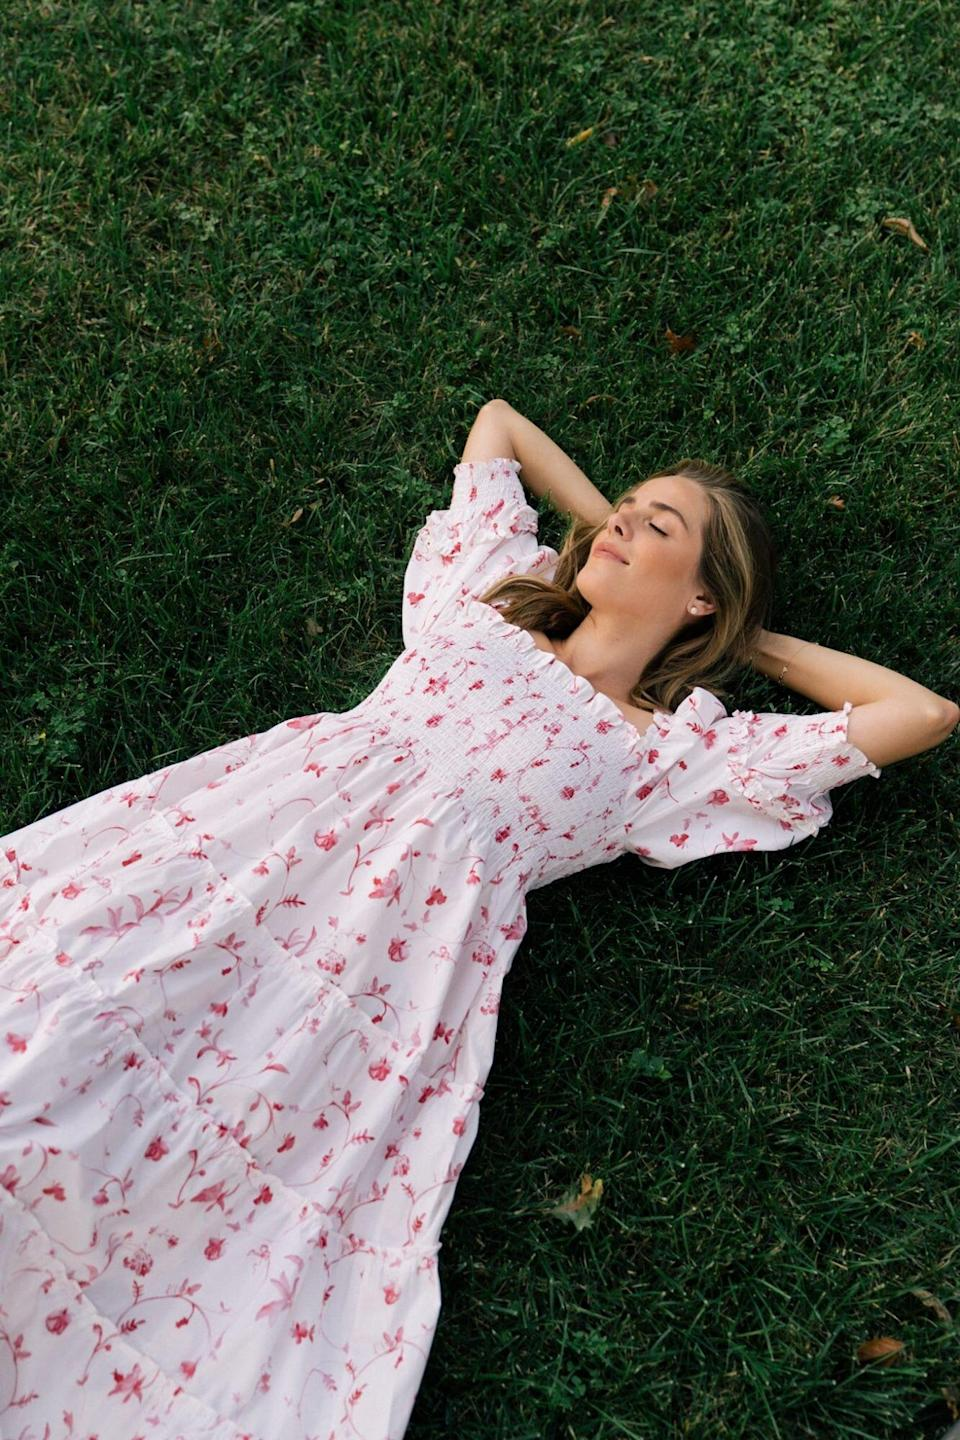 The Internet-Famous 'Nap Dress' Just Received a Fall Update